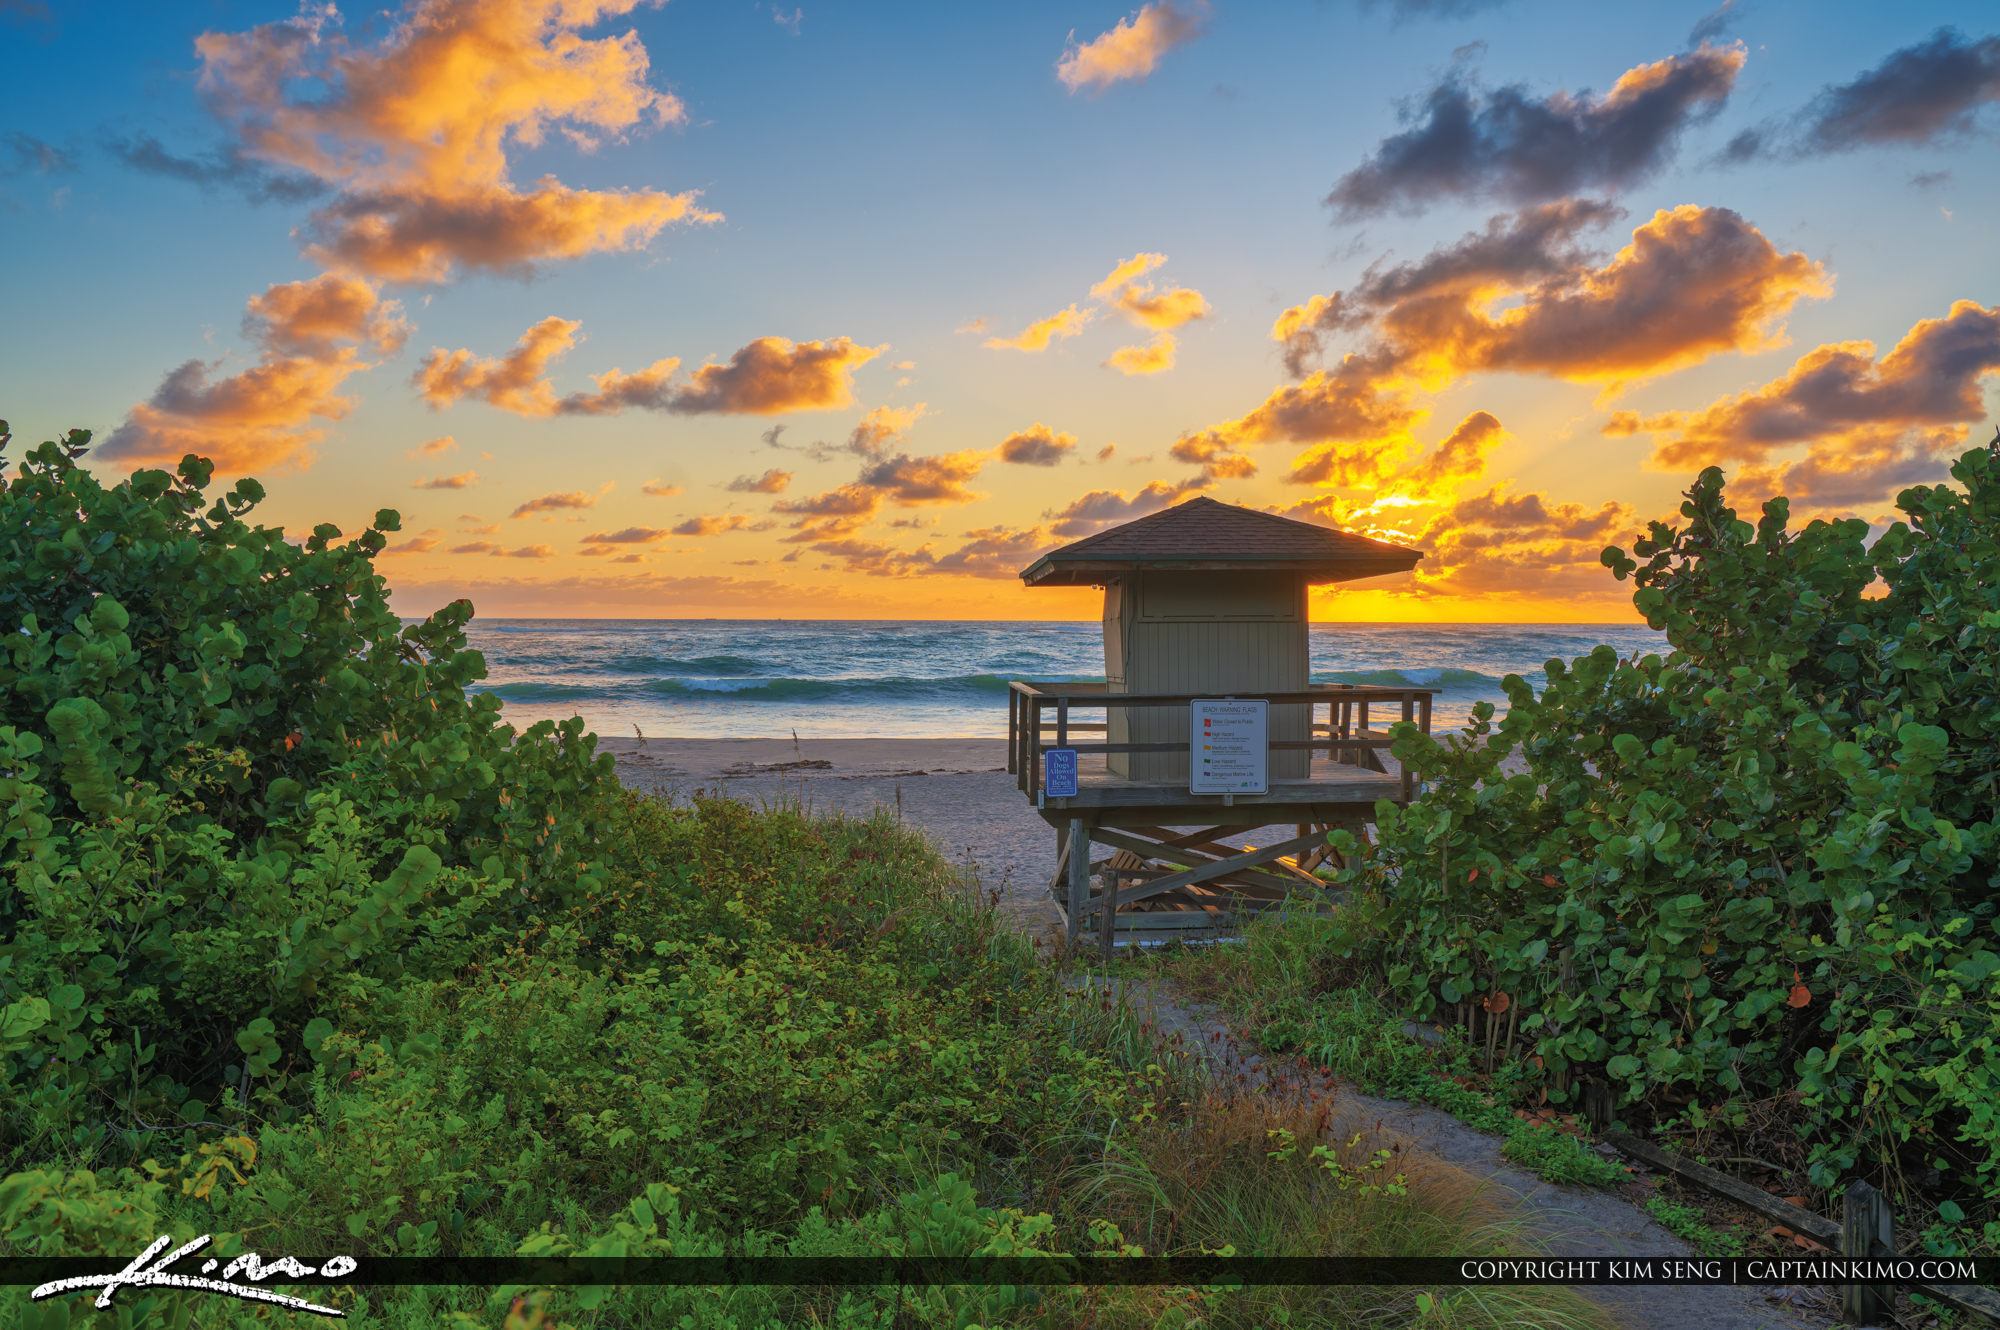 Jupiter Beach Park Sunrise at the Inlet Lifeguard Tower